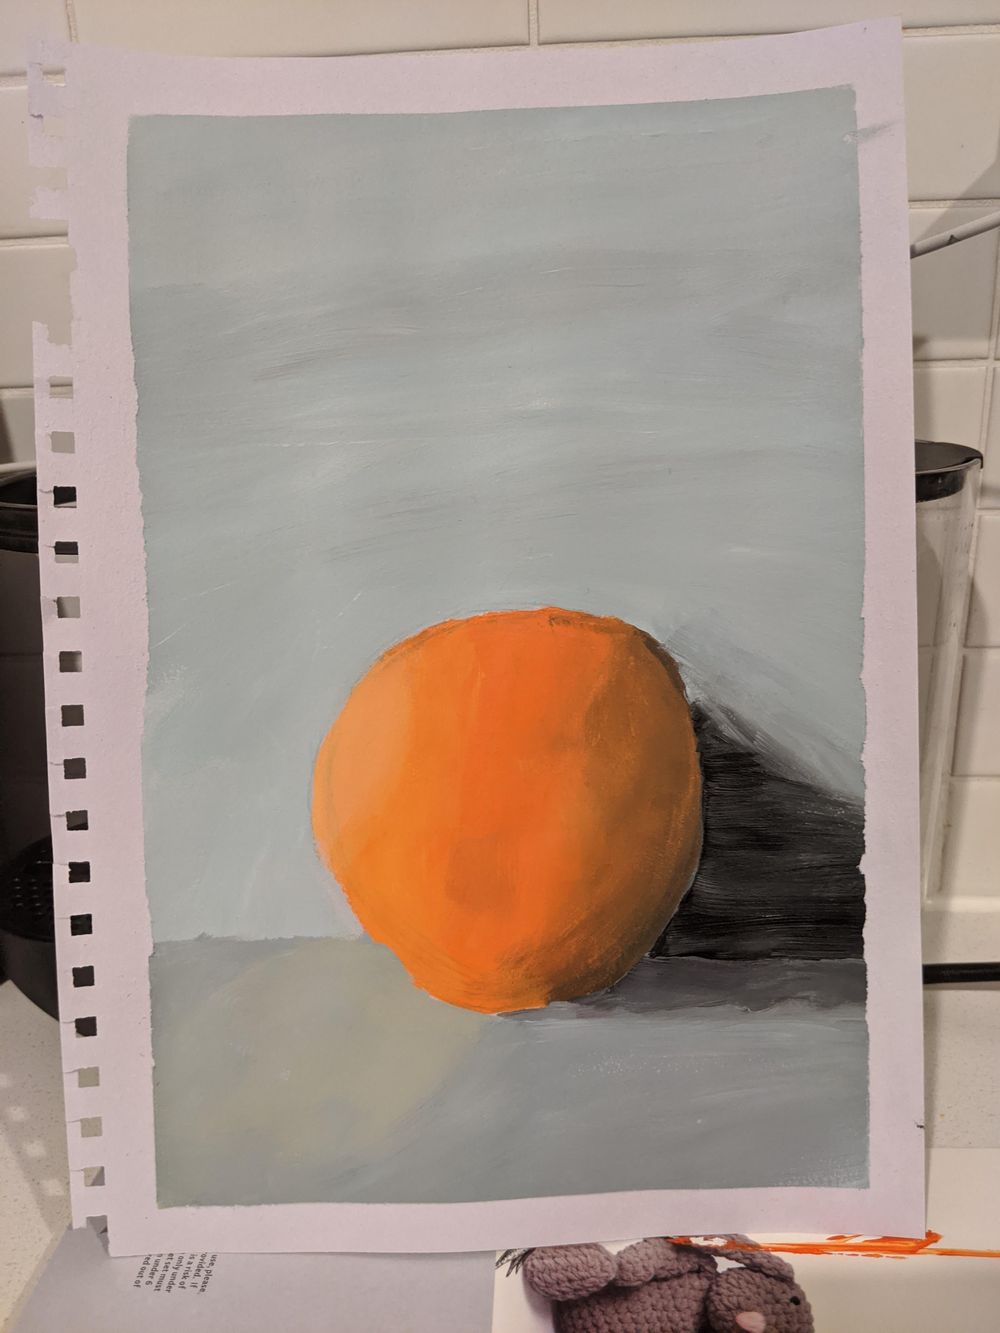 Orange and cliffs - image 2 - student project